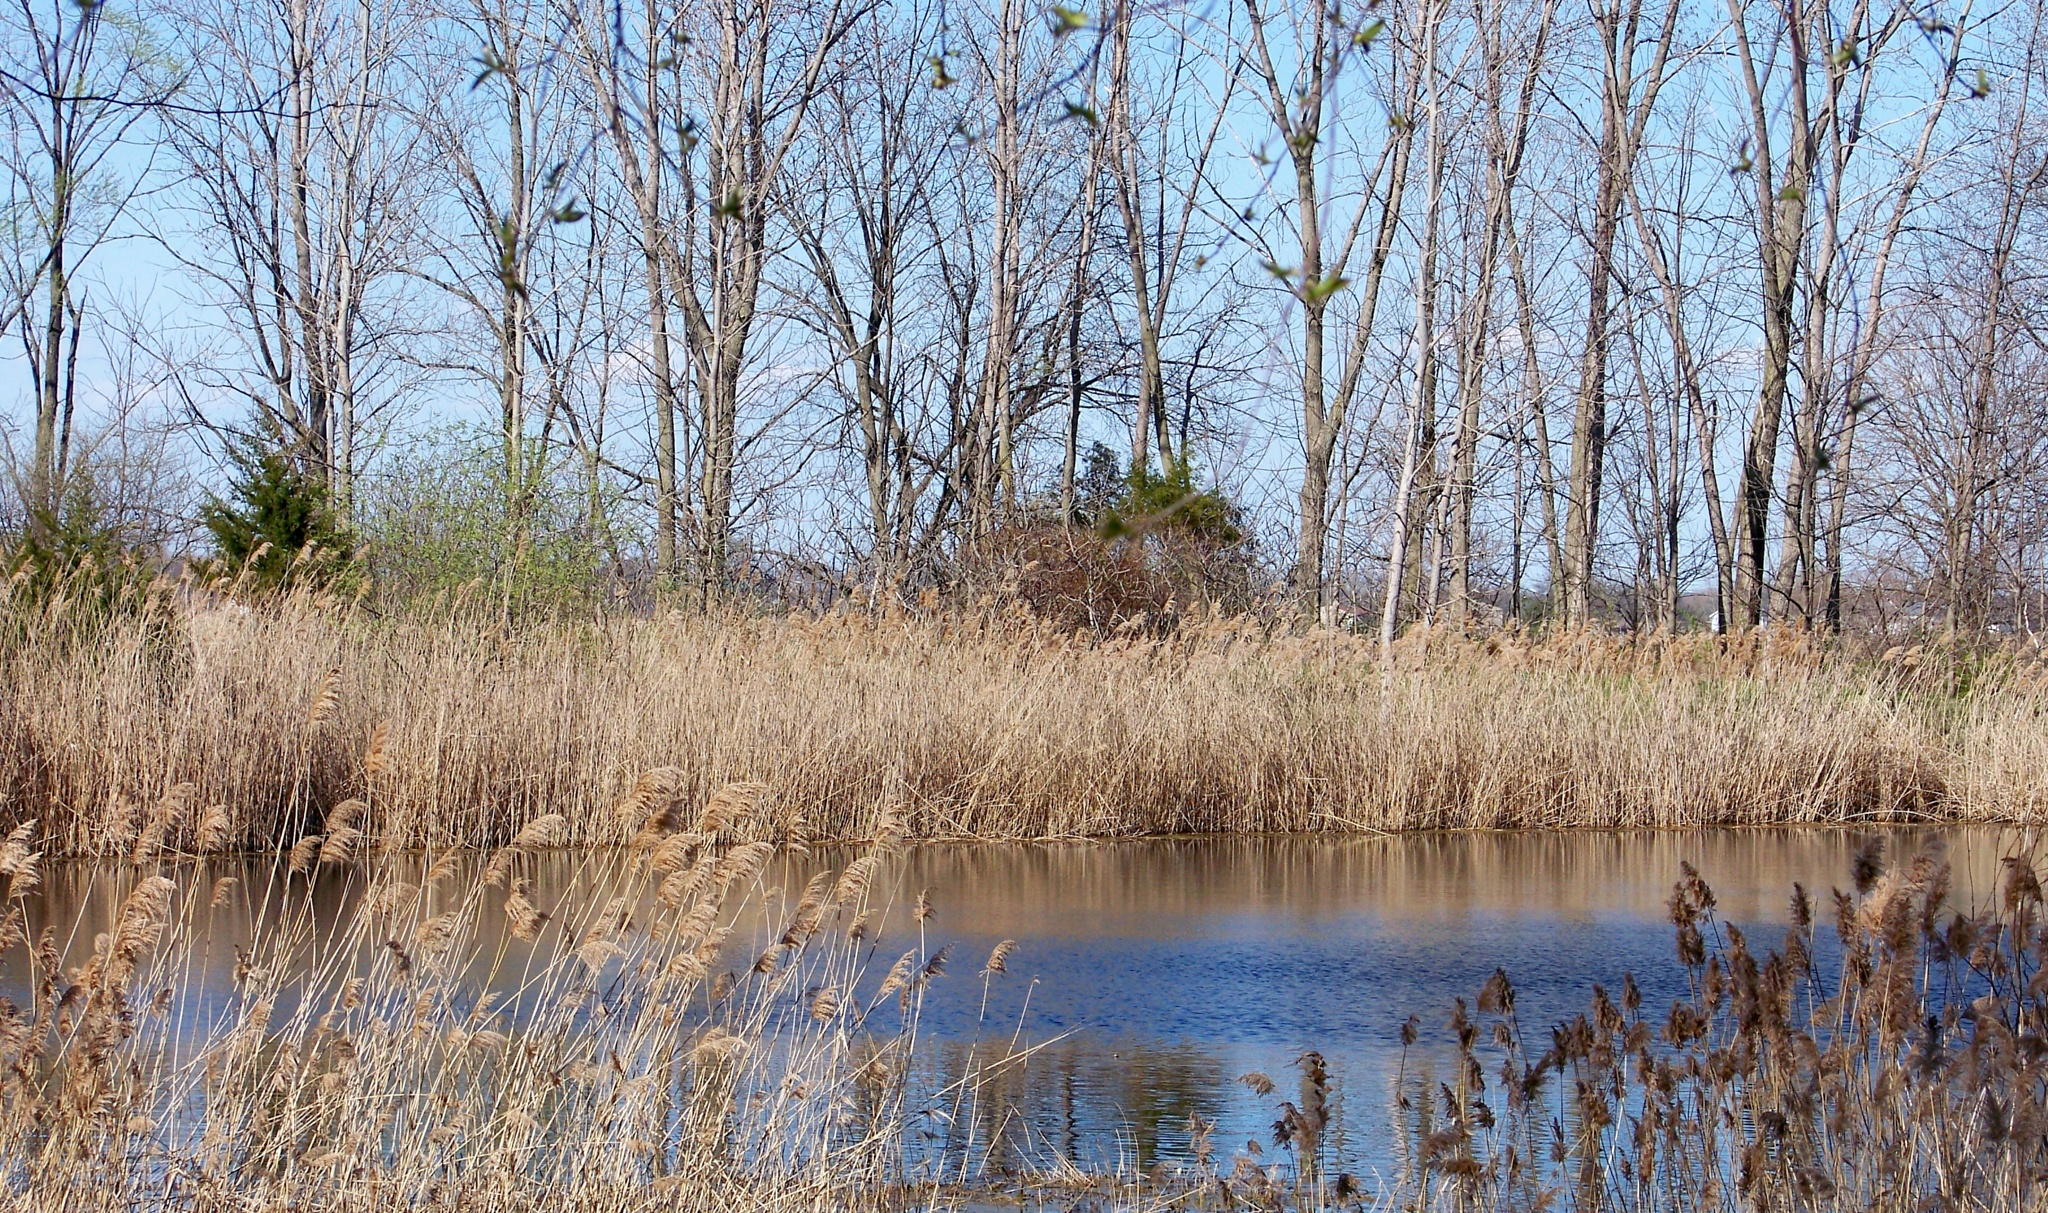 Early spring at the farm pond by RebeccaTammen